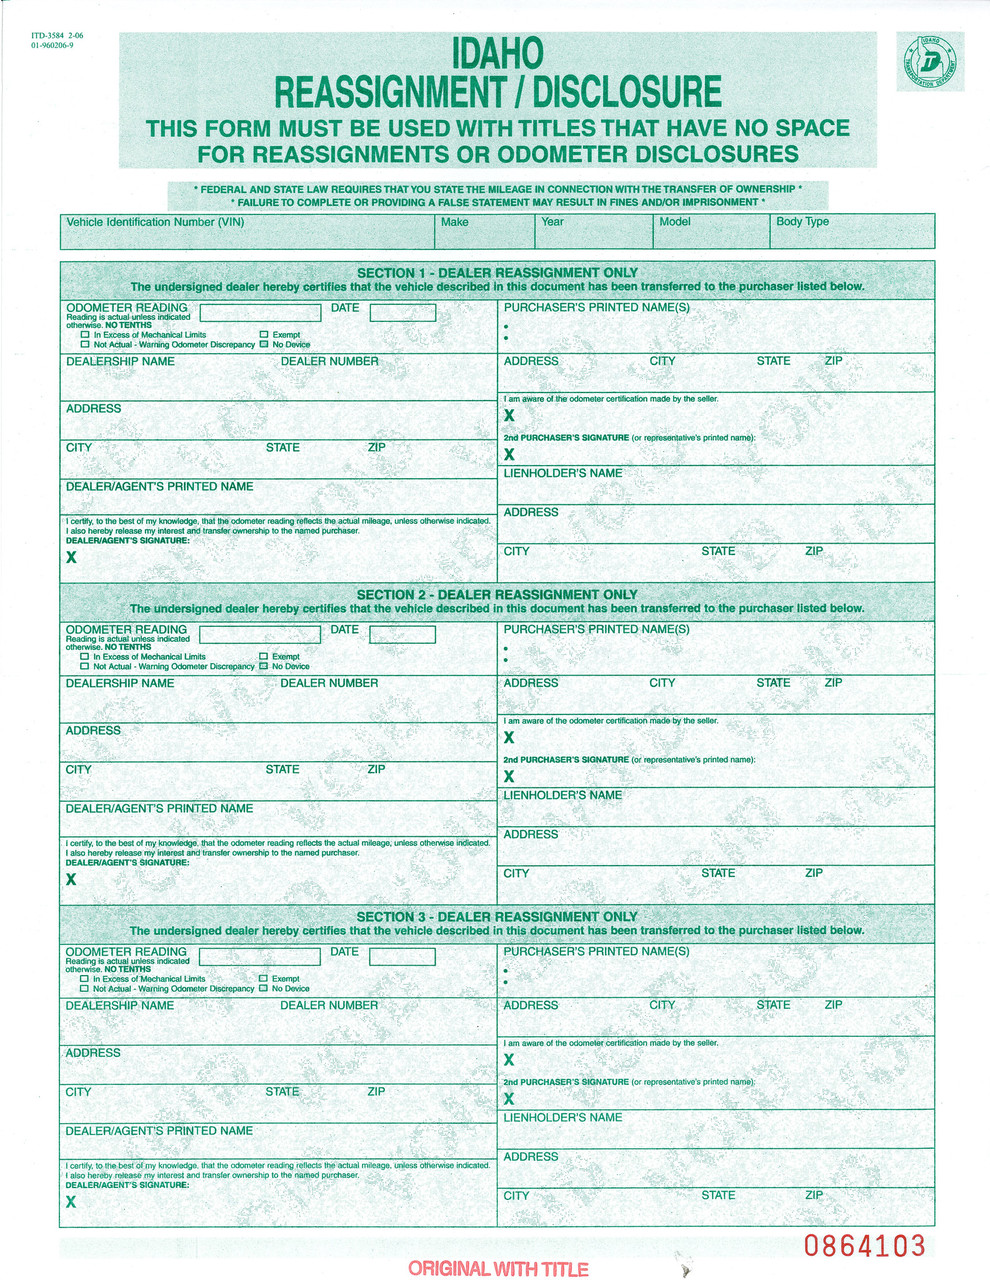 Idaho Title Reassignment /Disclosure Form